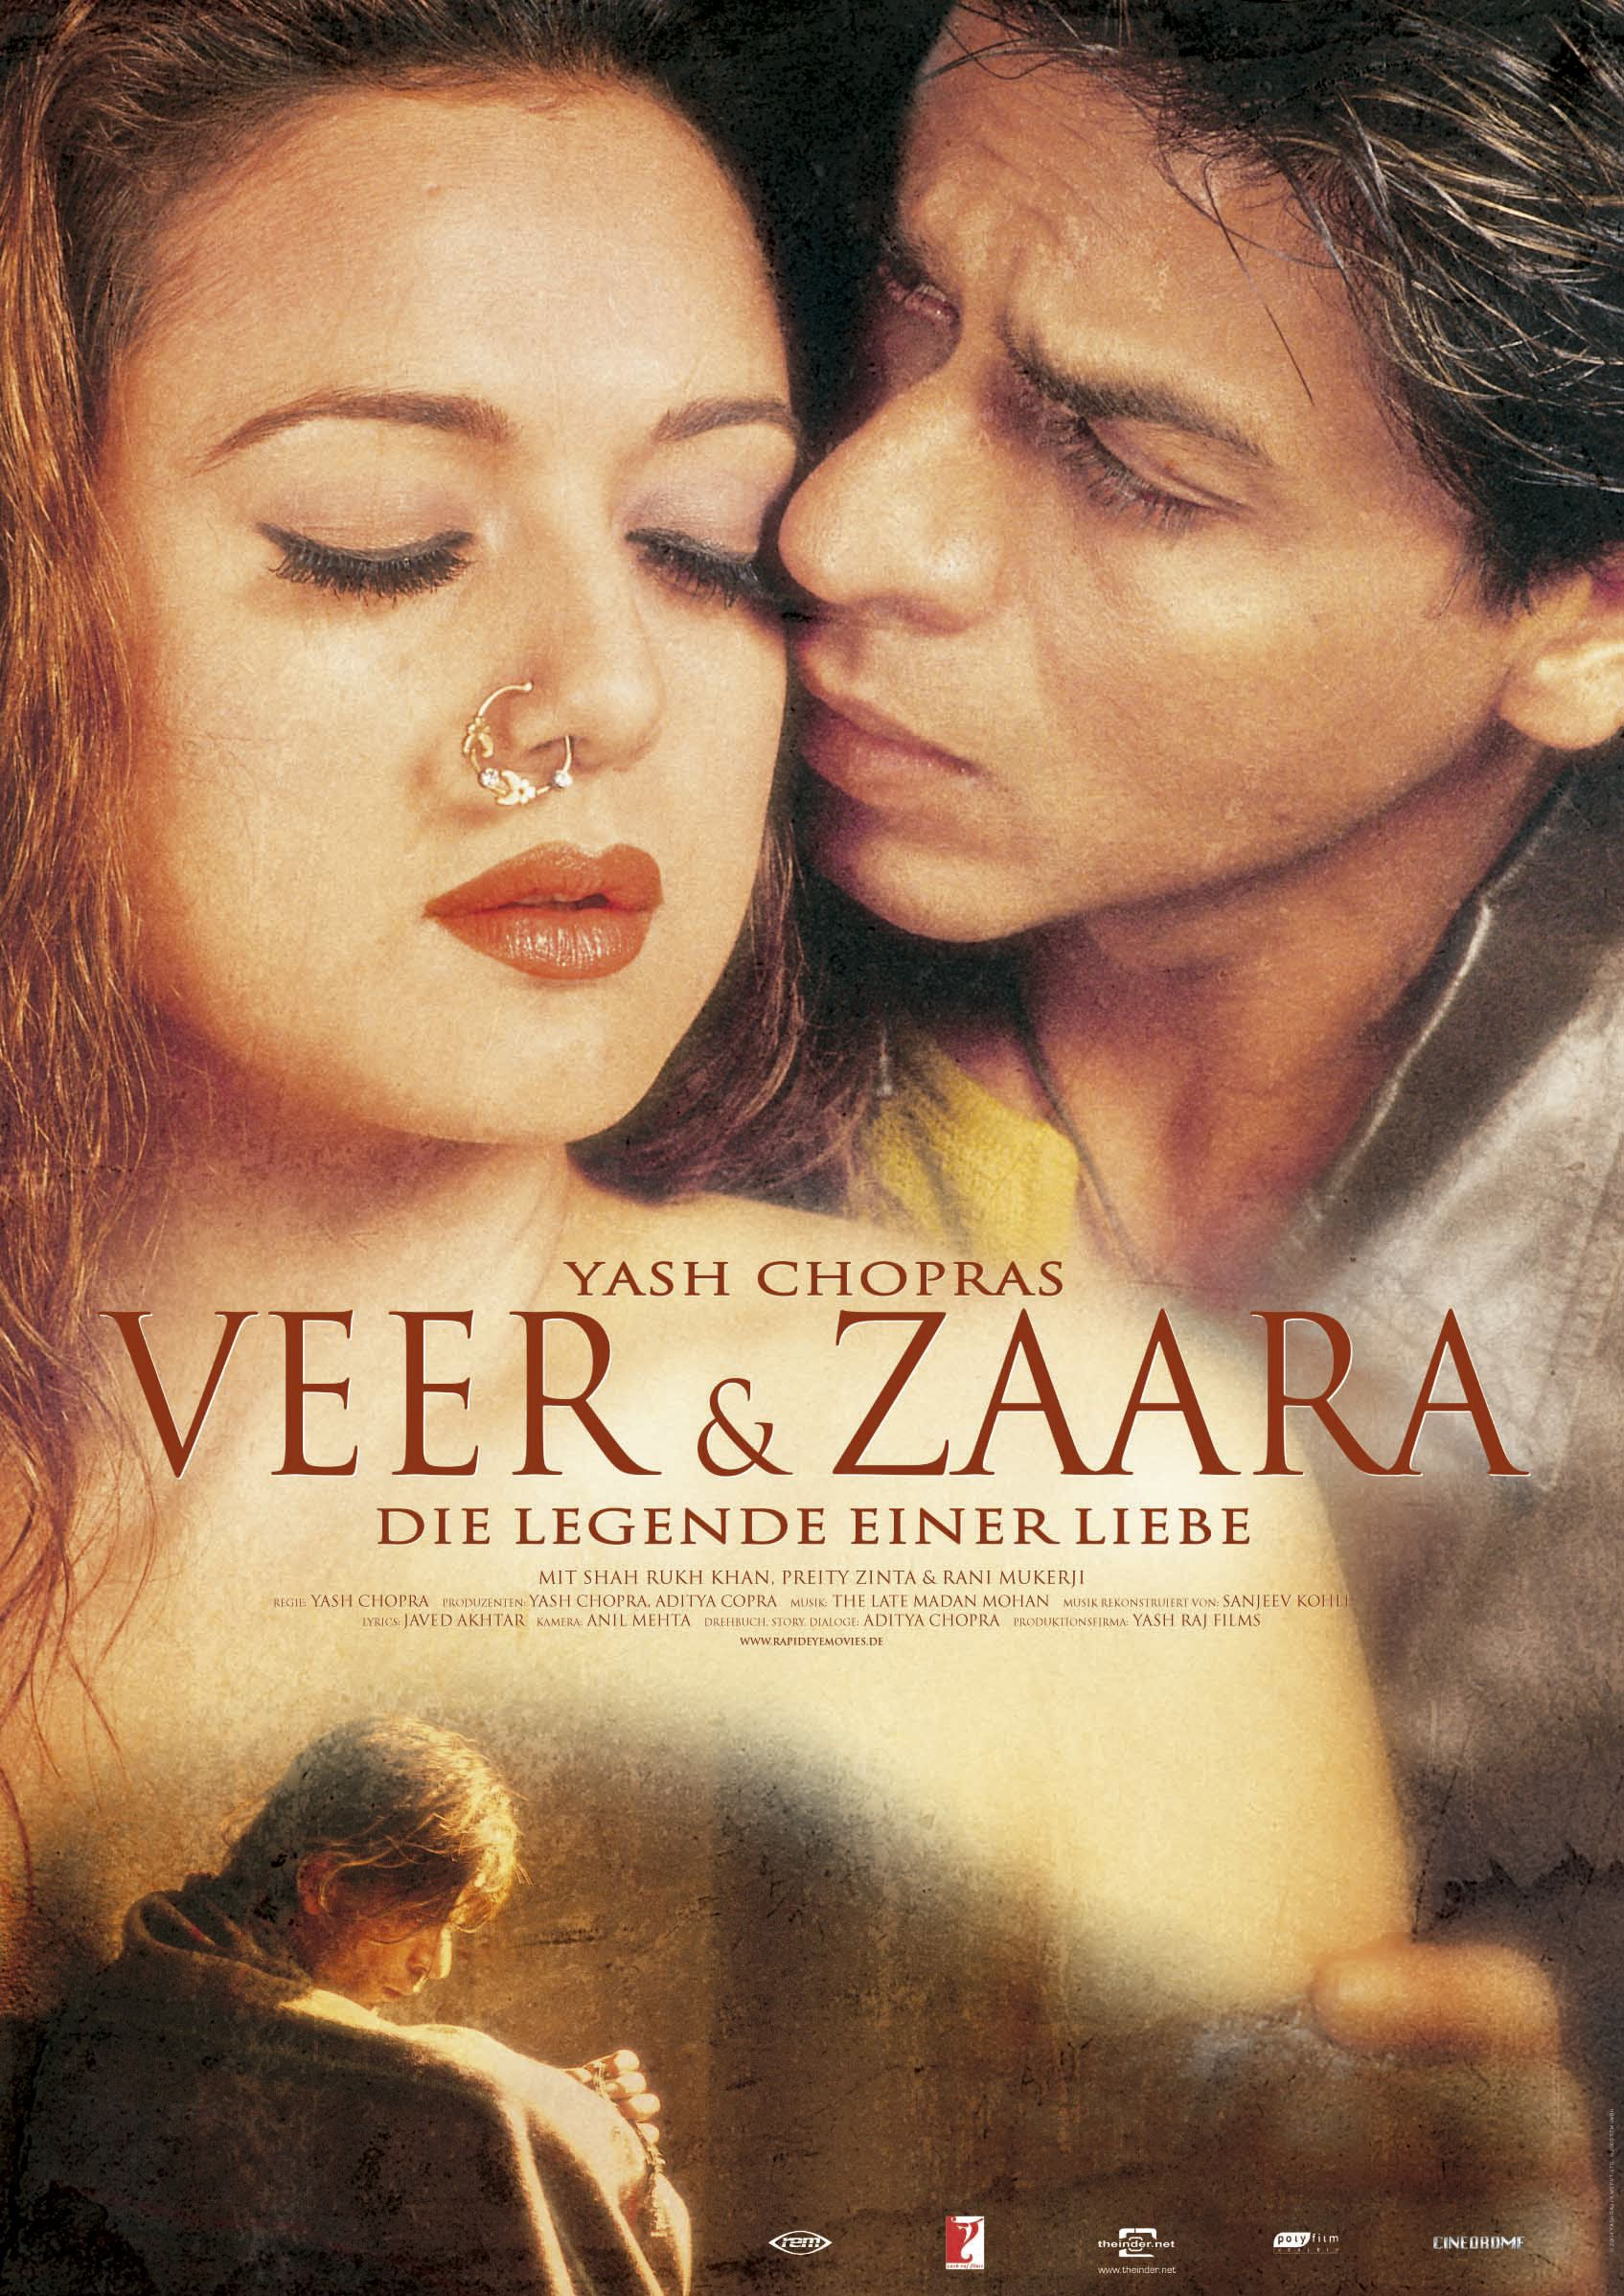 Veer Zaara Hindi Movies Online Free Download Free Movies Online Streaming Movies Free